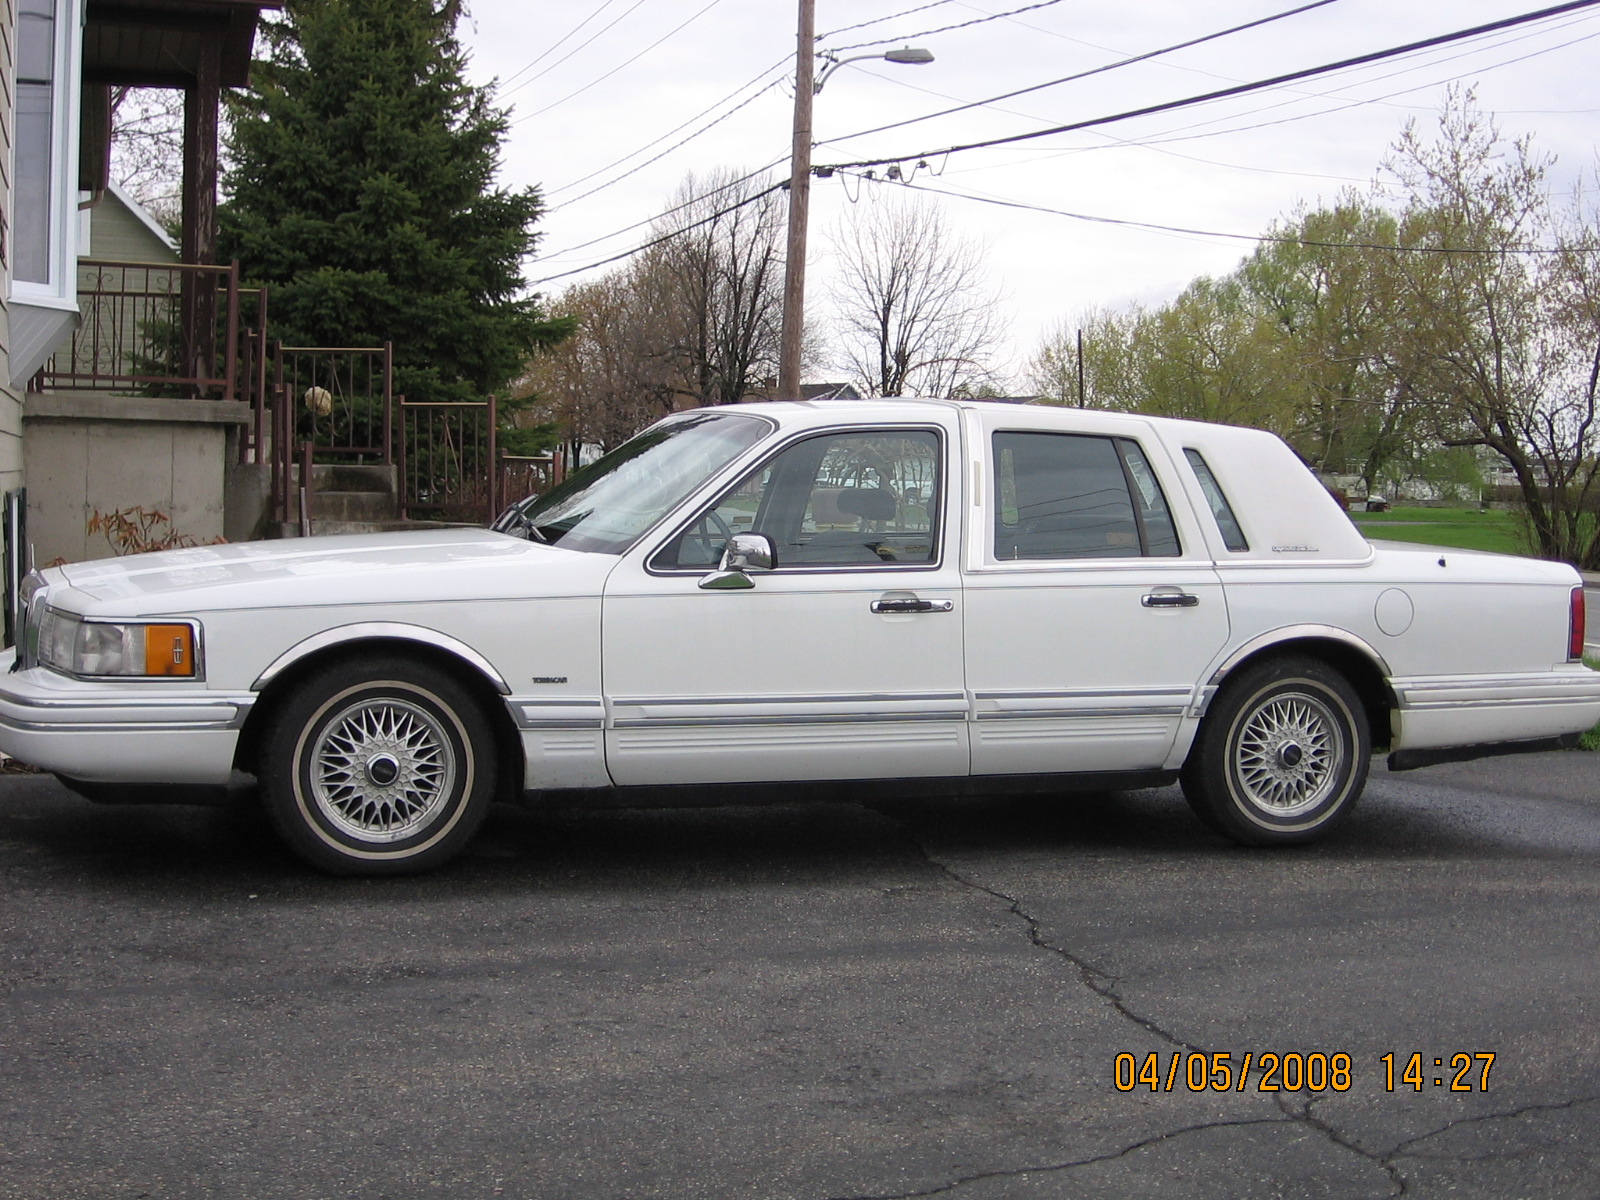 1992 lincoln town car engine diagram car wiring schematic diagram 1992 lincoln town car engine diagram 1992 lincoln town car 8 lincoln town car 8